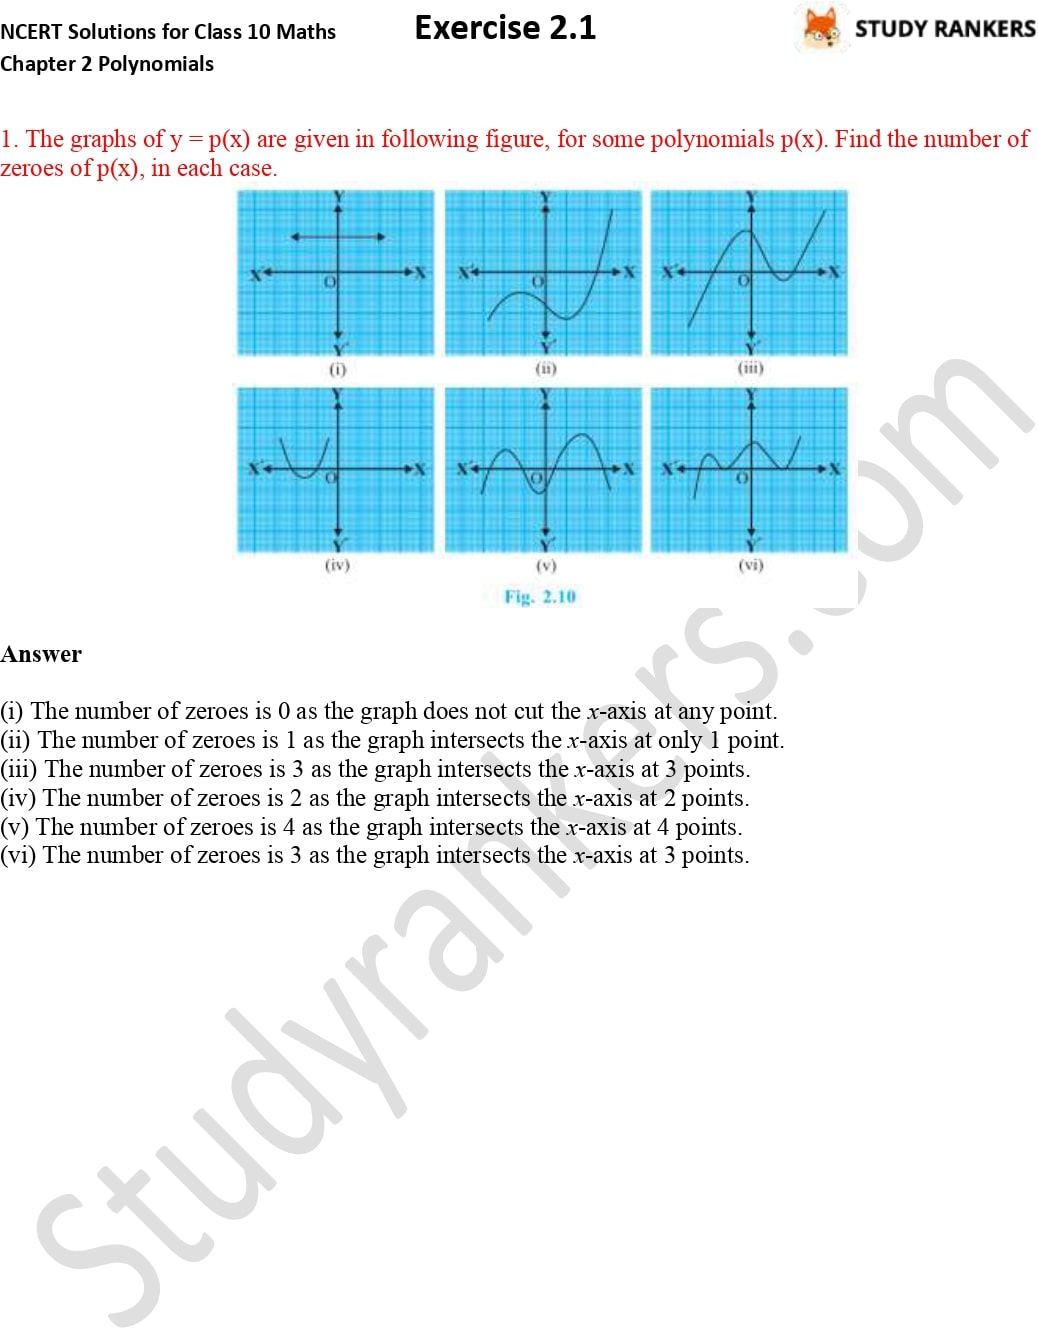 NCERT Solutions for Class 10 Maths Chapter 2 Polynomials Exercise 2.1